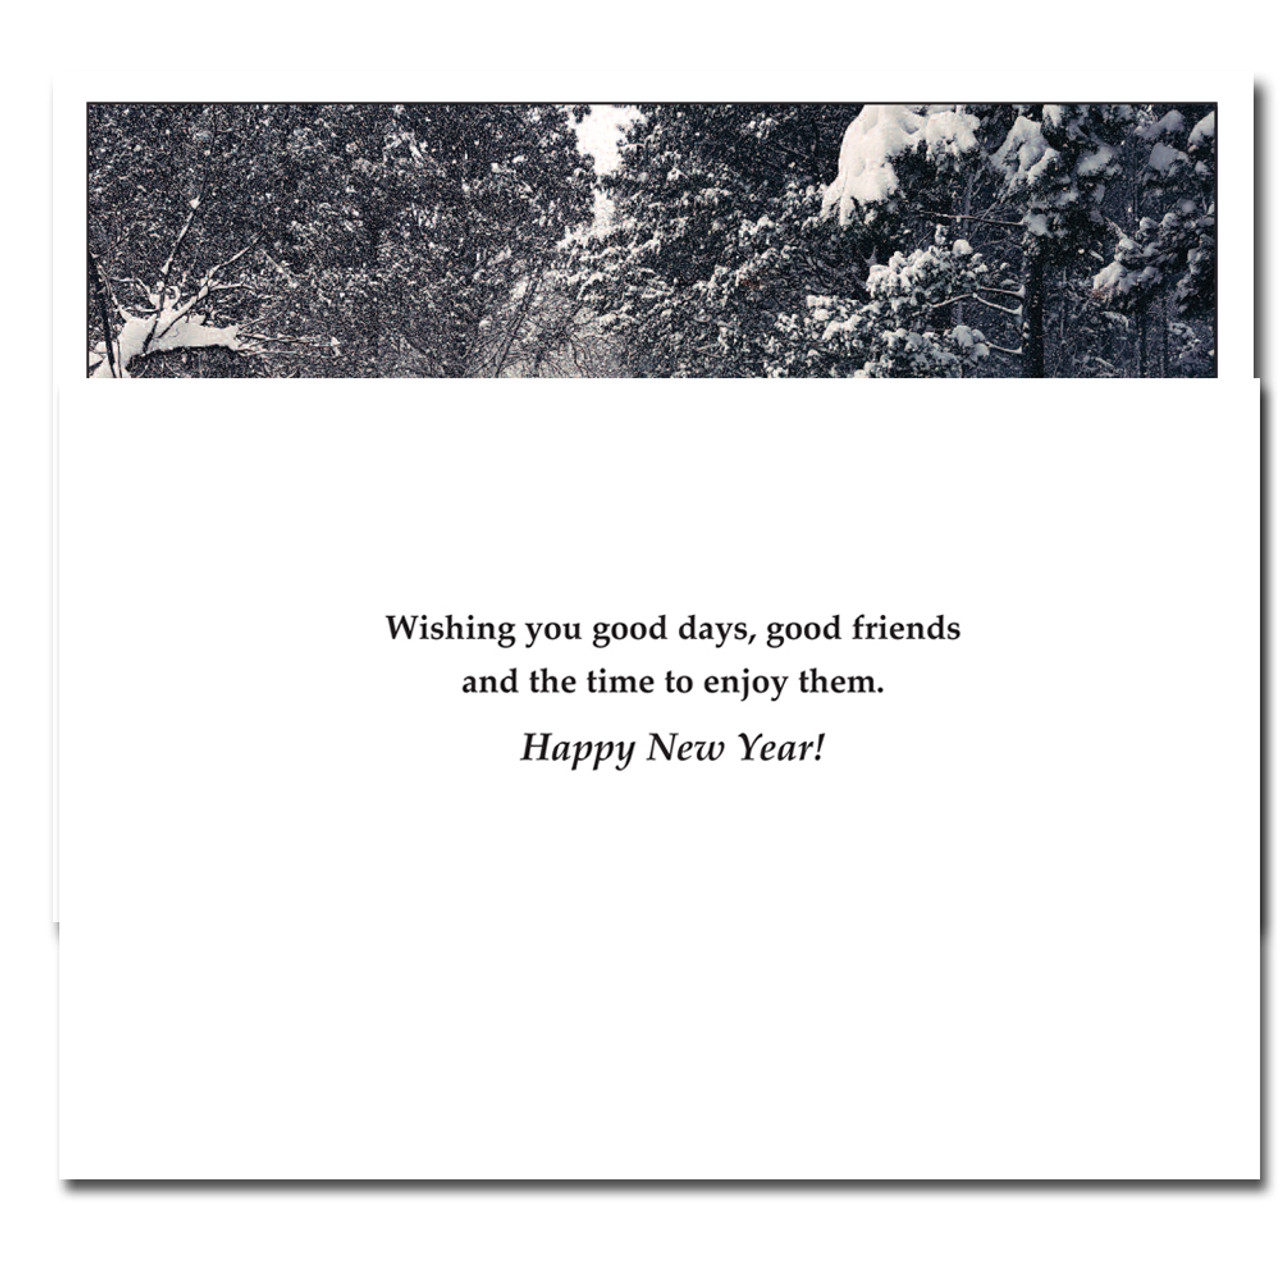 good friends new year card inside reads wishing you good days good friends and